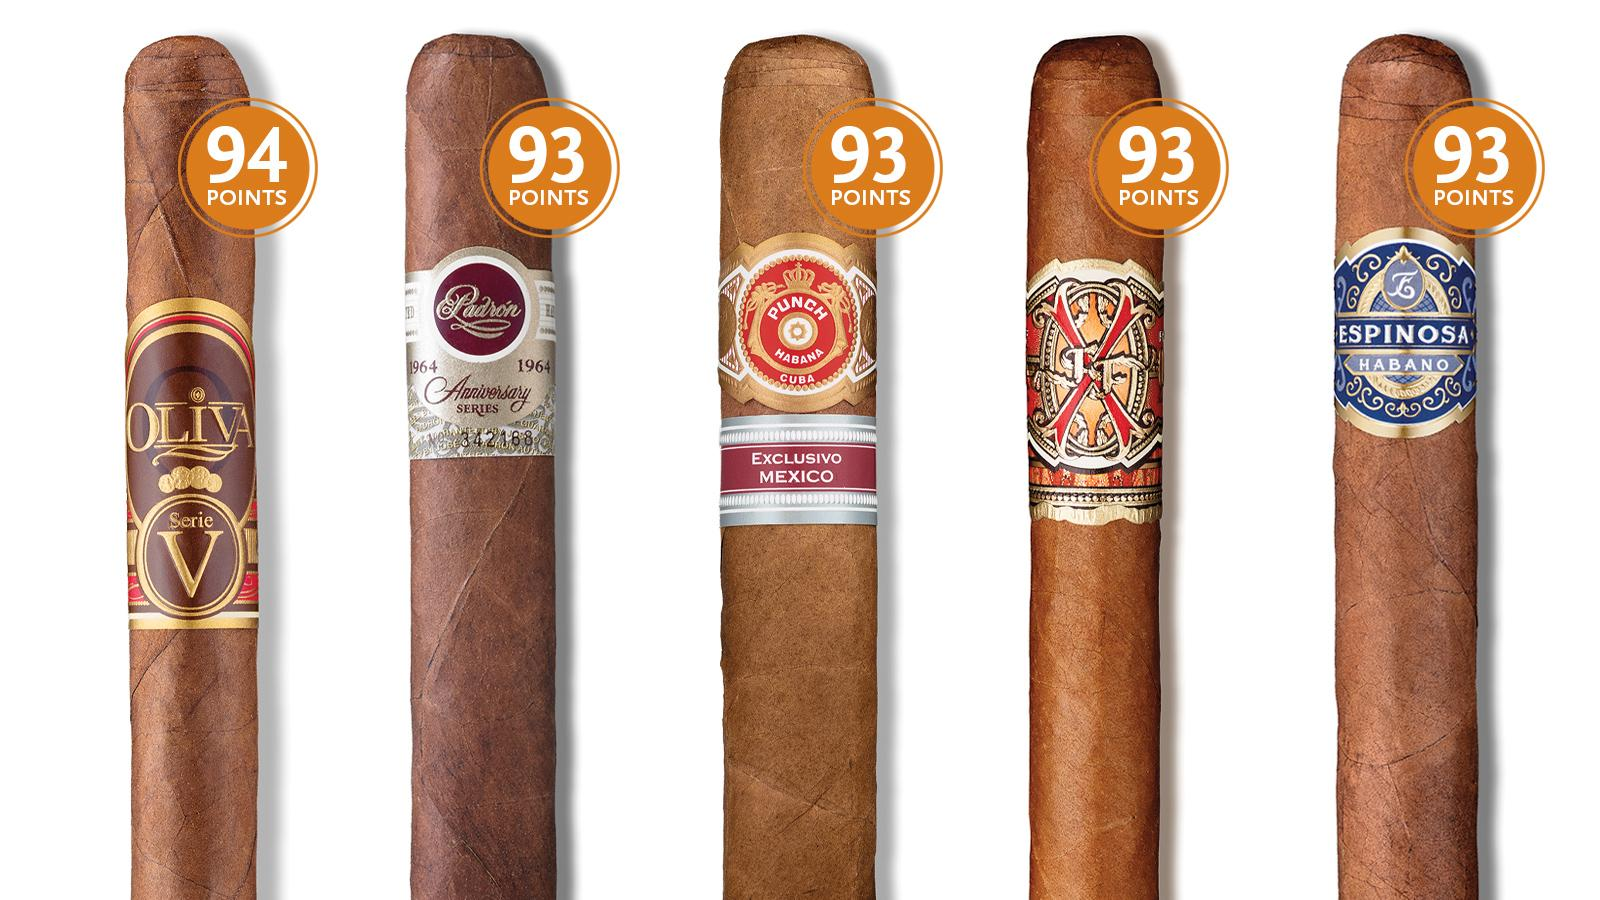 24 Outstanding Cigars To Light Up Right Now